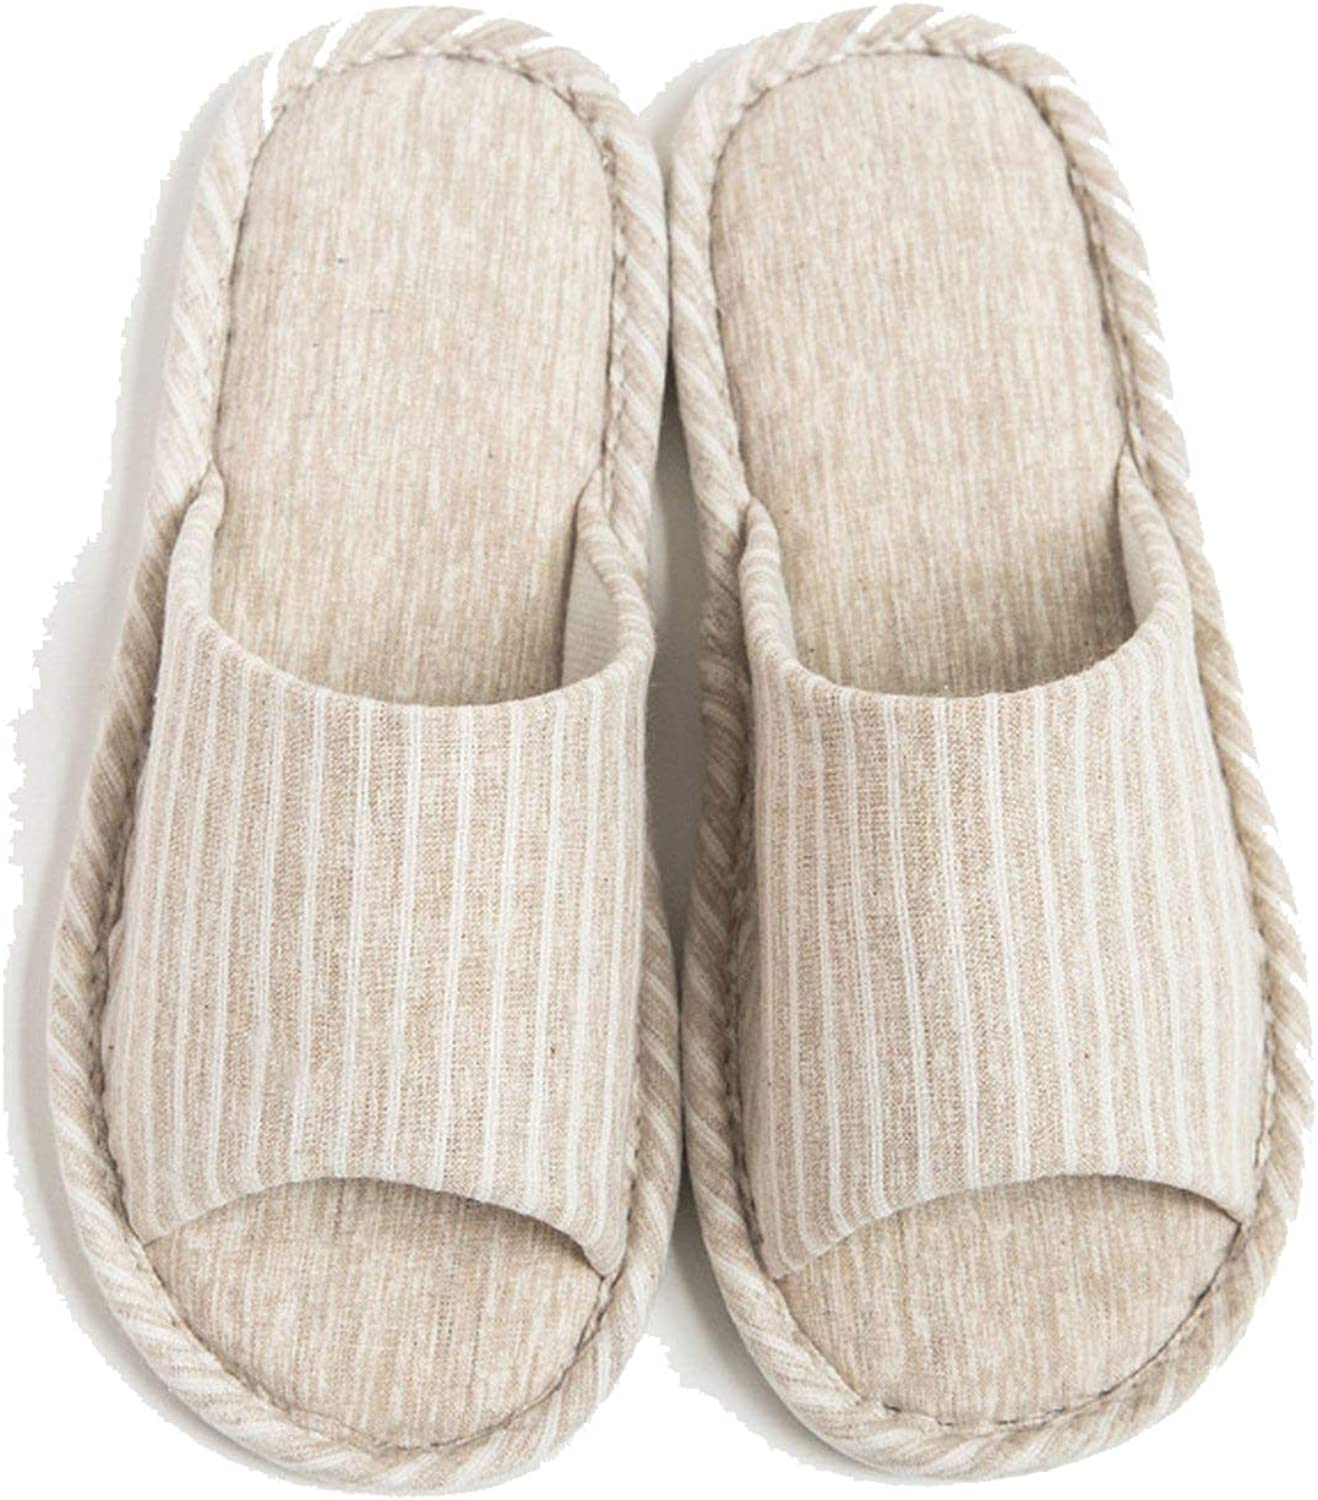 Spring Home Slippers Woman Indoor Flat shoes Style Unisex Floor Slides Casual Flax Slipper,